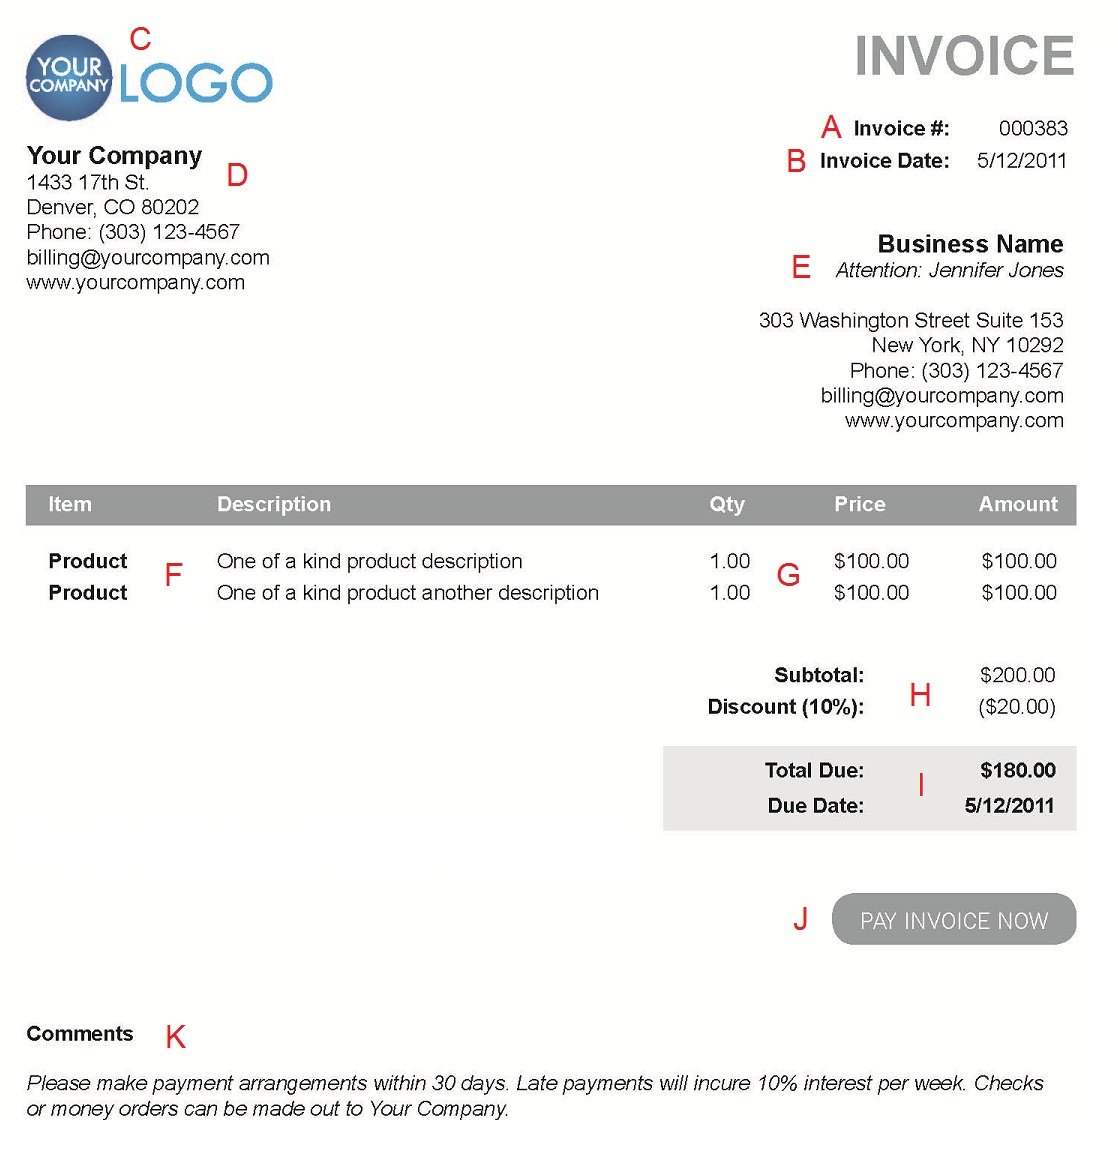 Isabellelancrayus  Terrific The  Different Sections Of An Electronic Payment Invoice With Excellent A  With Astonishing Unpaid Invoice Letter Also Invoice Approval Software In Addition Invoices Forms And Outstanding Invoice Letter As Well As Carbonless Invoice Additionally Invoice Approval Stamp From Paysimplecom With Isabellelancrayus  Excellent The  Different Sections Of An Electronic Payment Invoice With Astonishing A  And Terrific Unpaid Invoice Letter Also Invoice Approval Software In Addition Invoices Forms From Paysimplecom